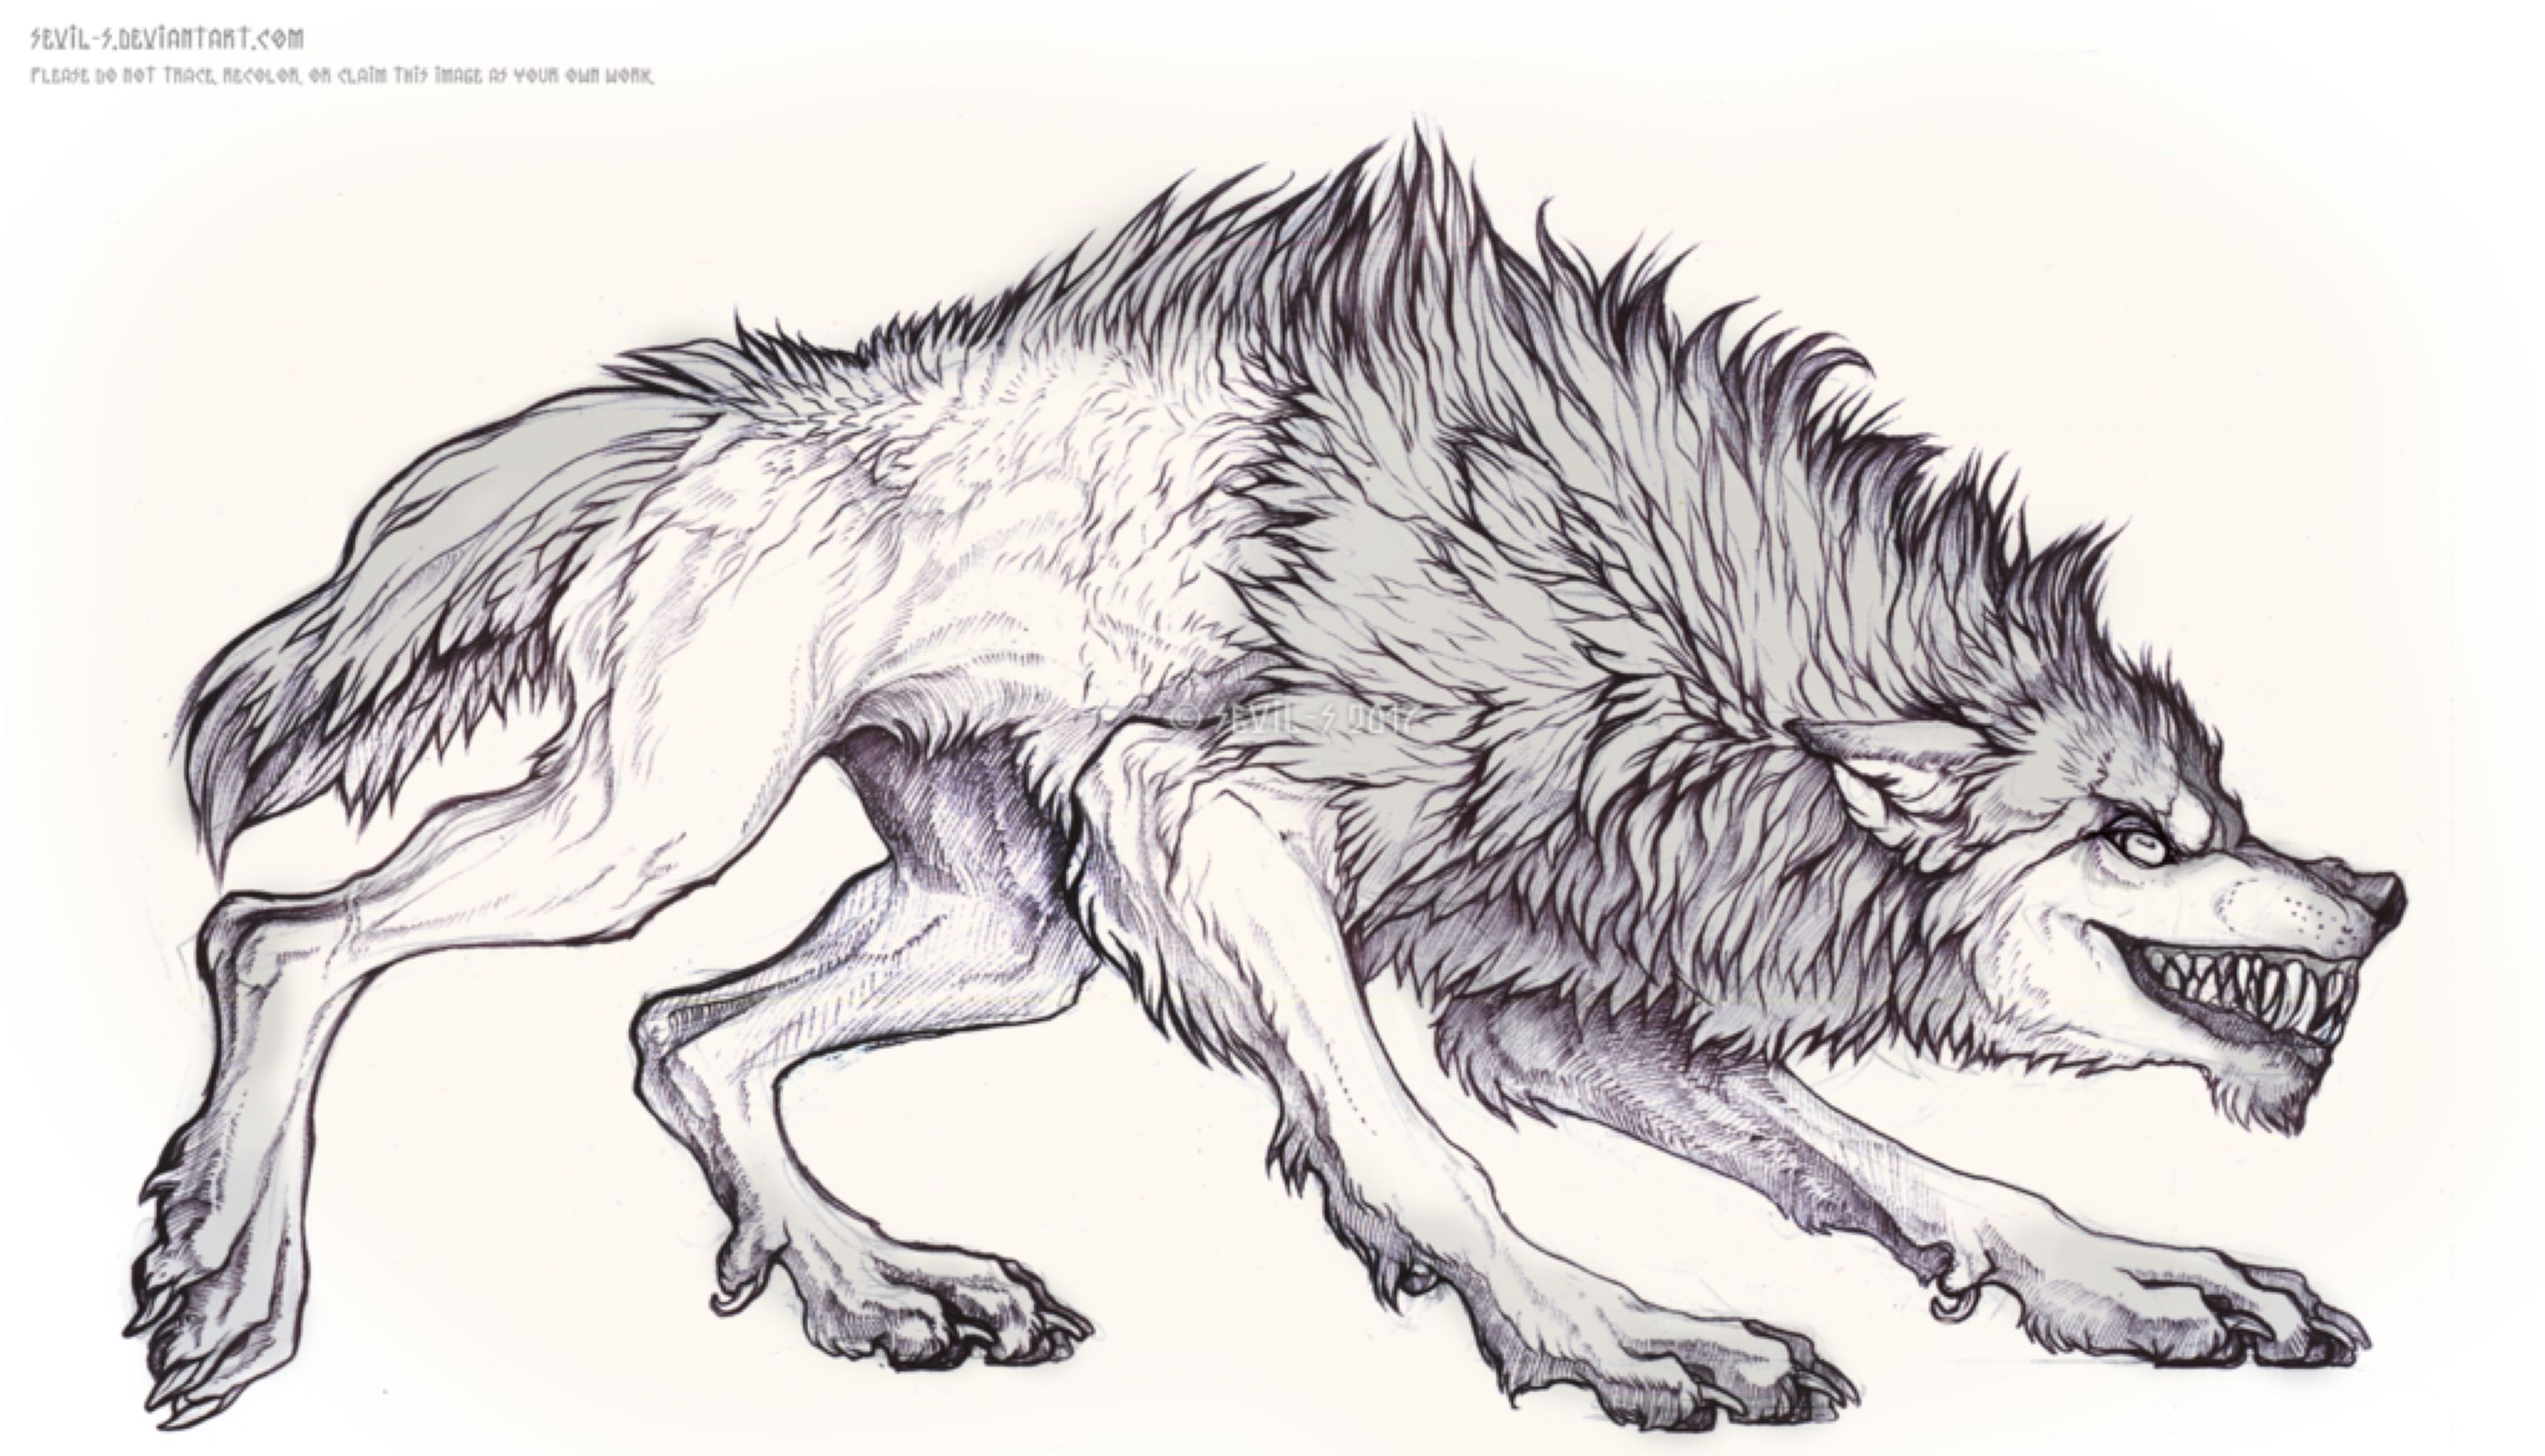 Werewolf By Sevil S On Deviantart